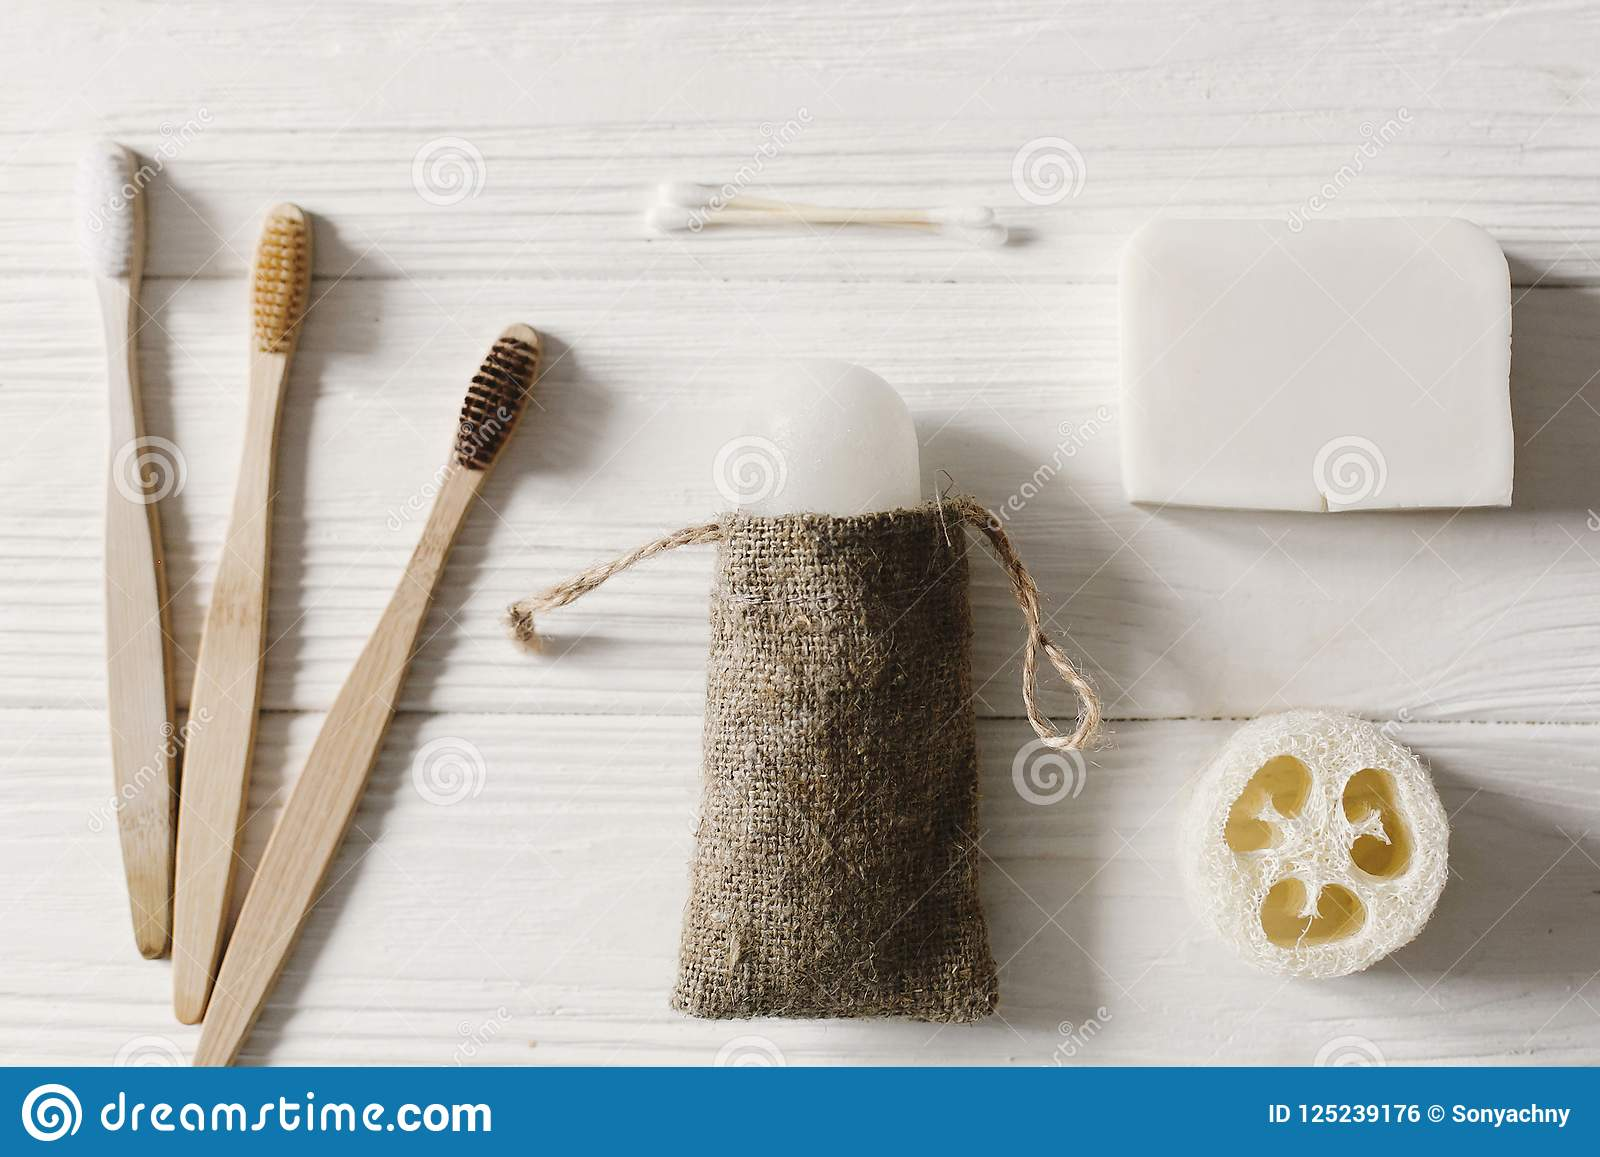 Sustainable Lifestyle Concept Zero Waste Flat Lay Bathroom Essentials Plastic Free Items Eco Natural Bamboo Stock Photo Image Of Clean Bamboo 125239176